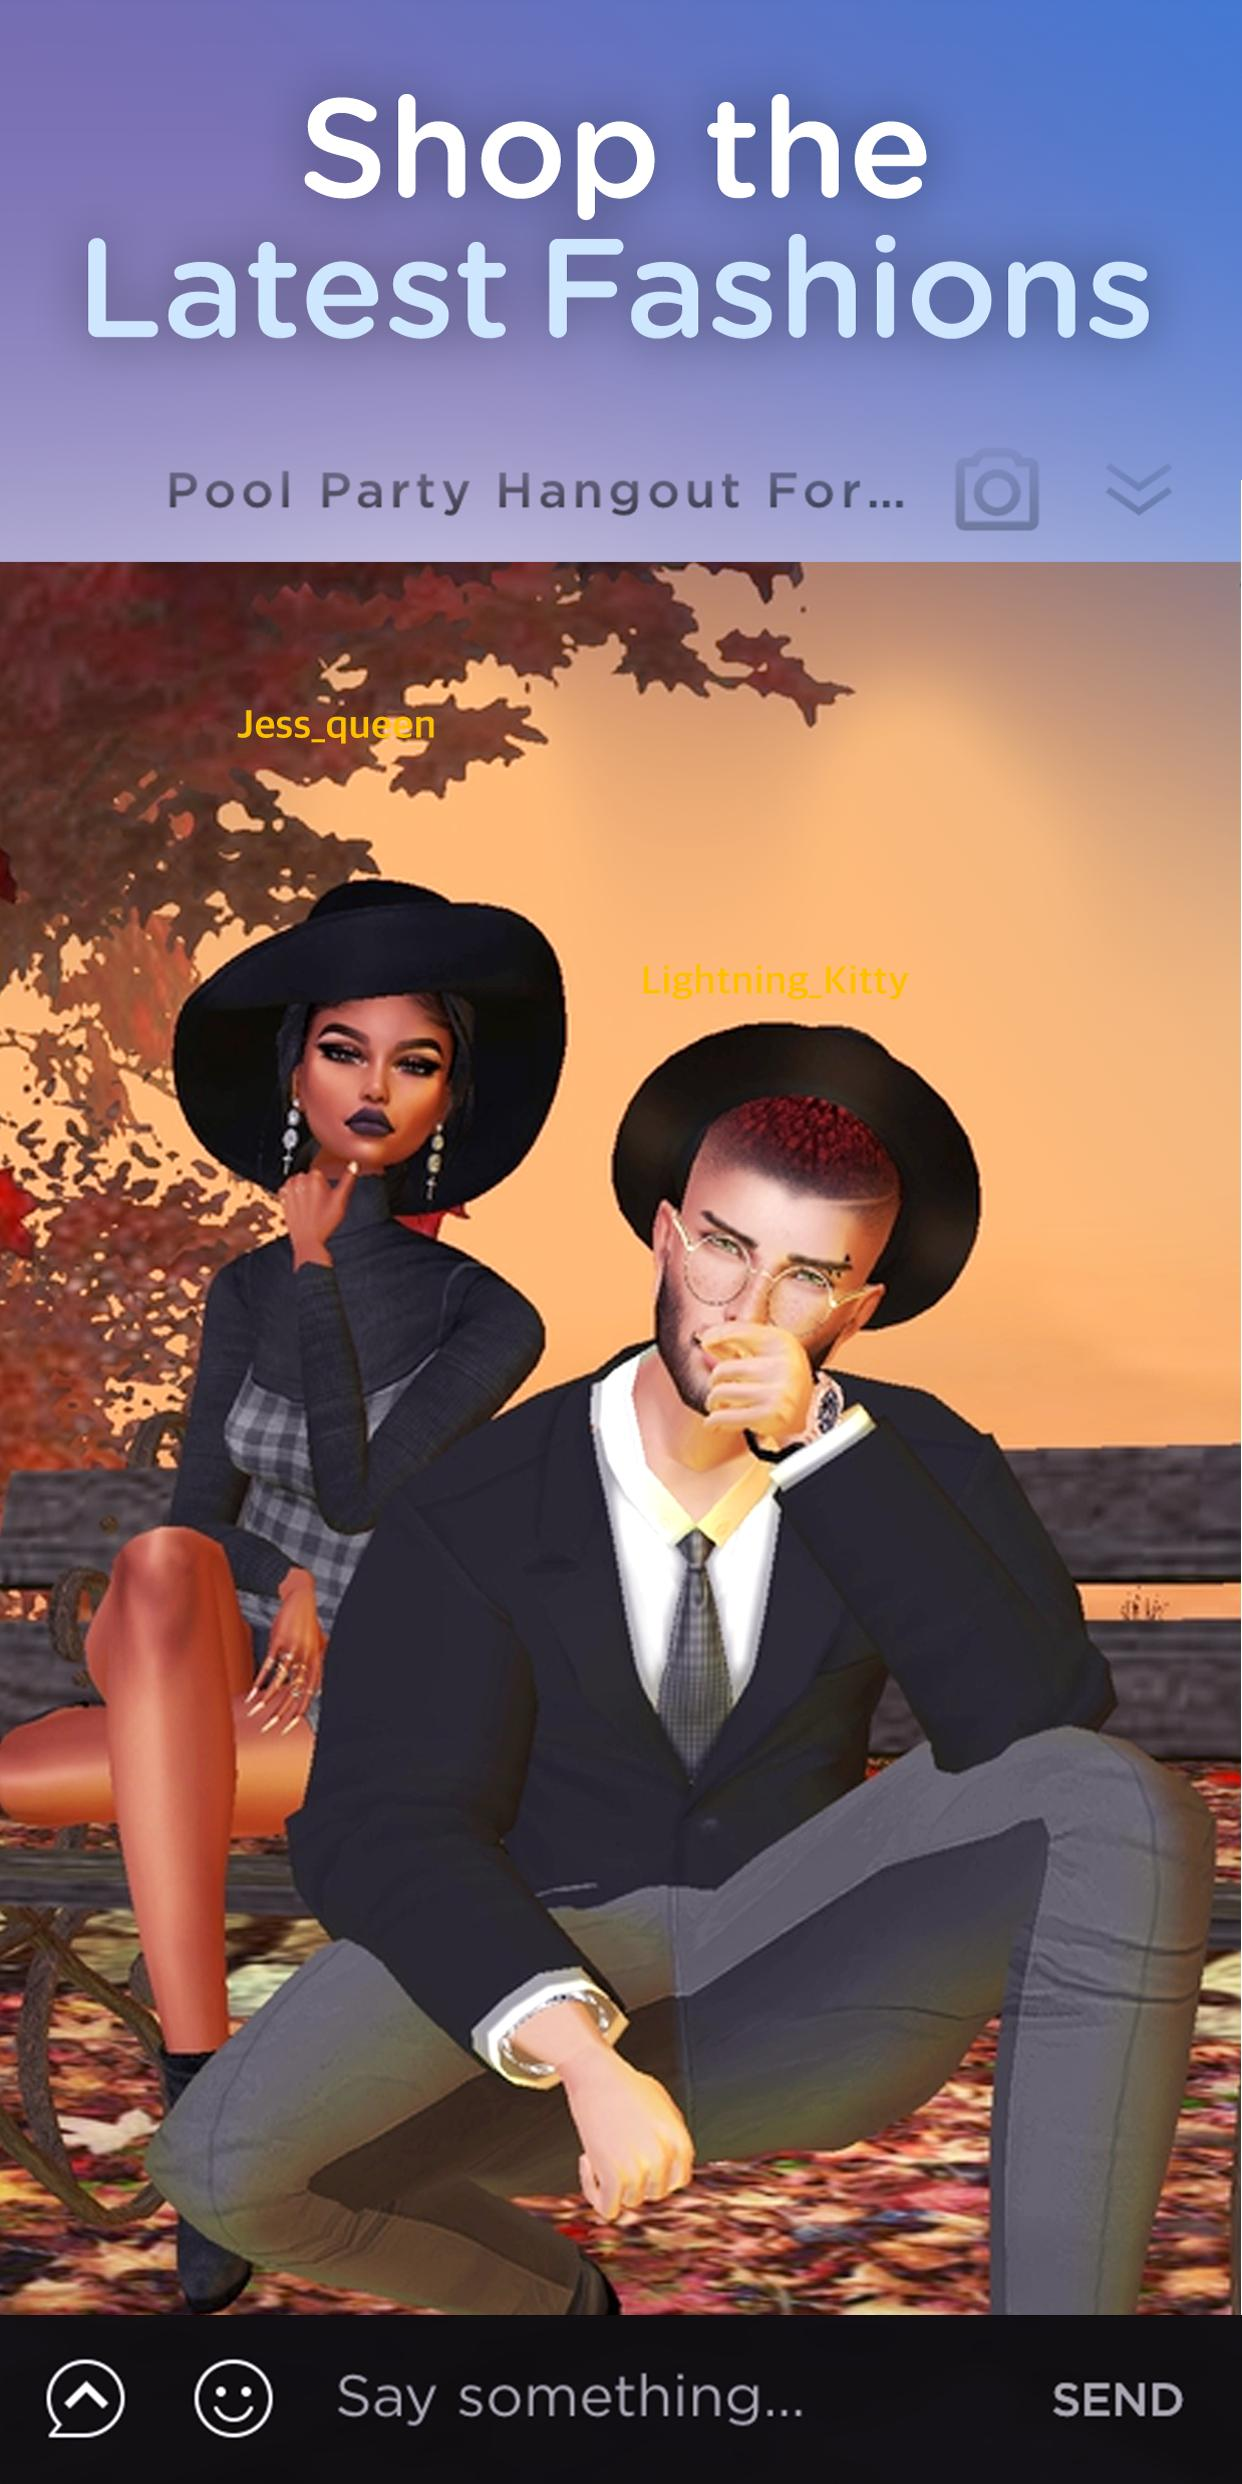 IMVU 3D Avatar! Virtual World & Social Game 5.1.1.50101001 Screenshot 3